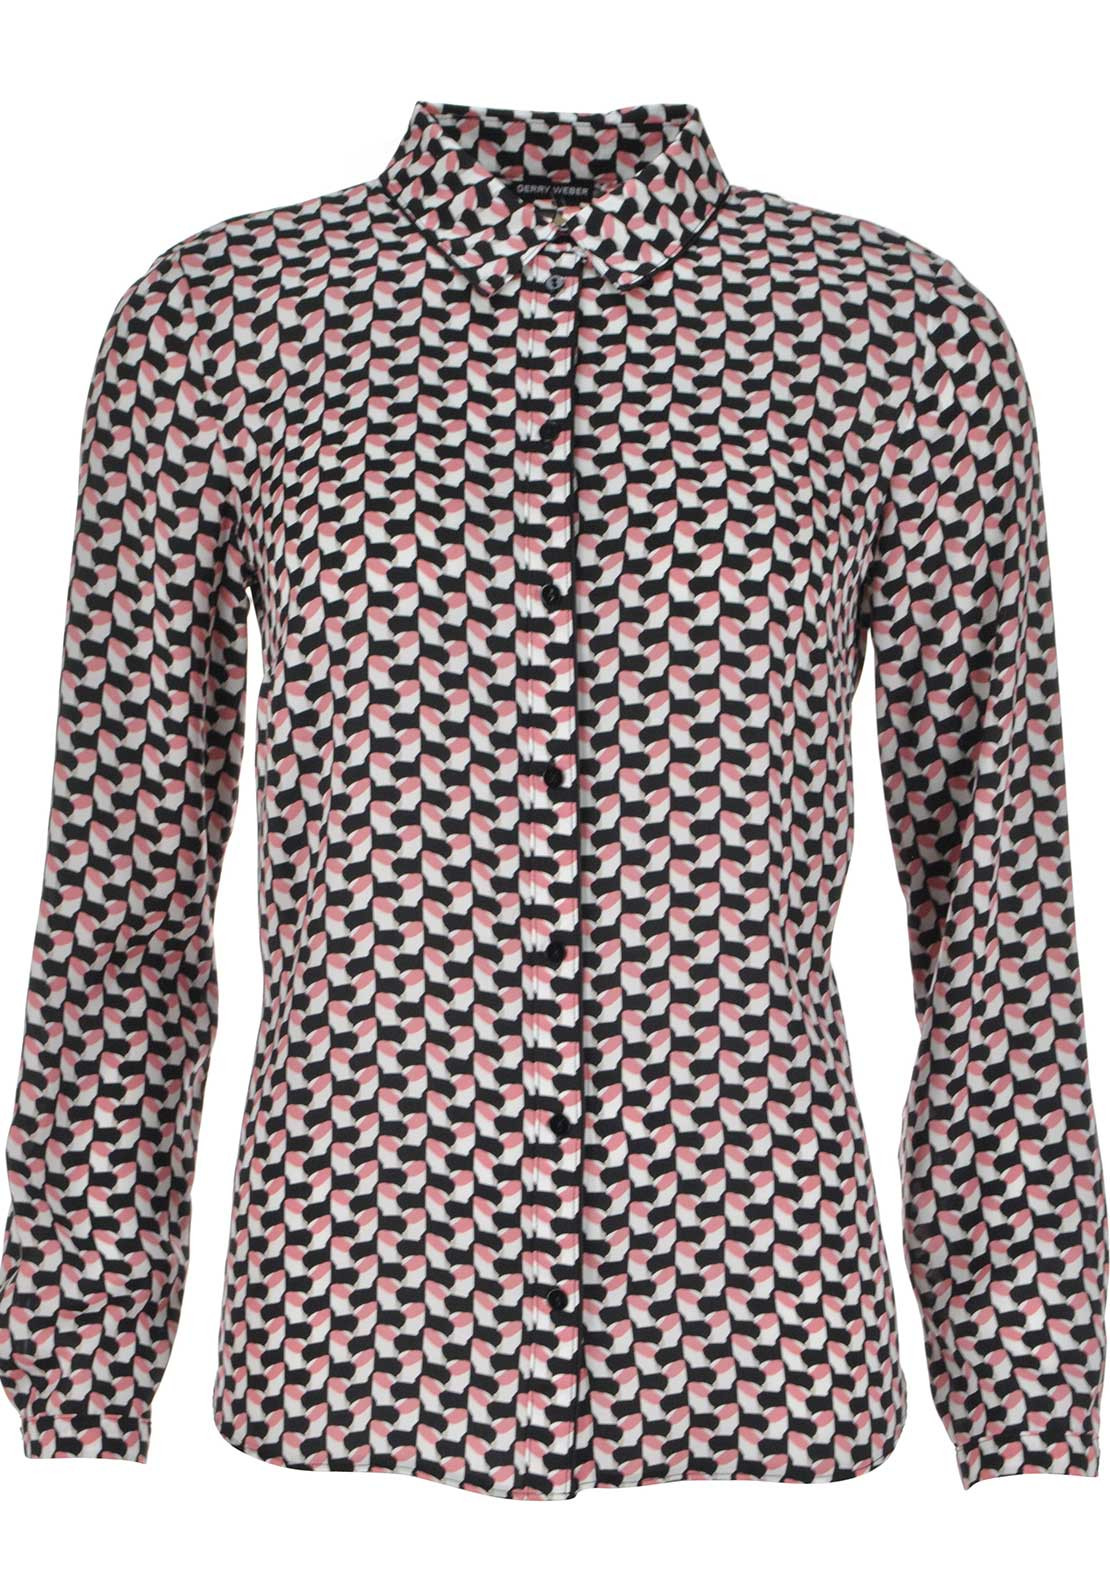 Gerry Weber Geometric Print Long Sleeve Blouse, Multi-Coloured